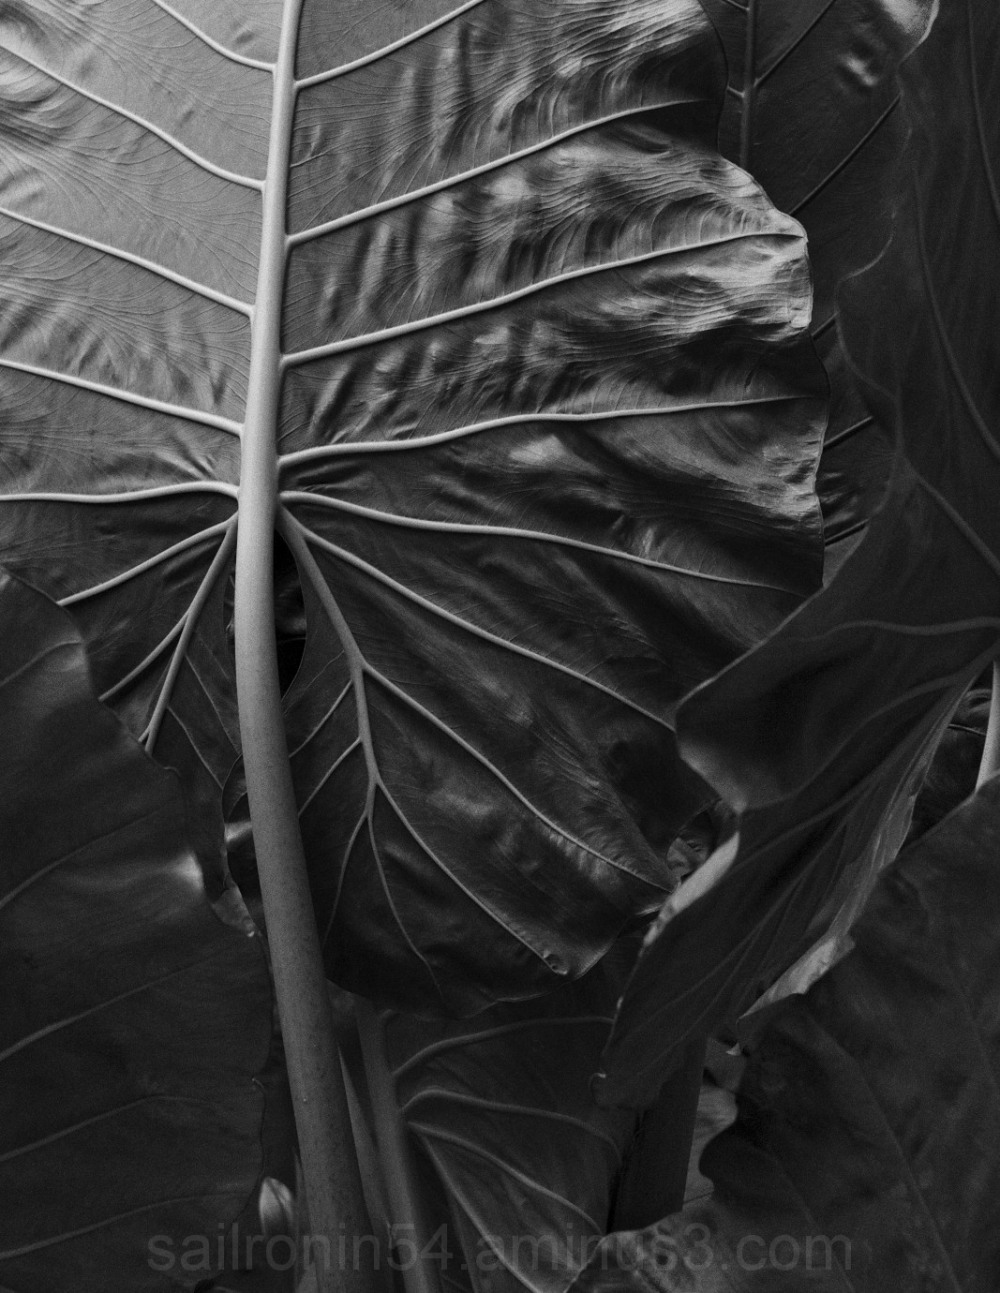 B&W Elephant Leaf detail